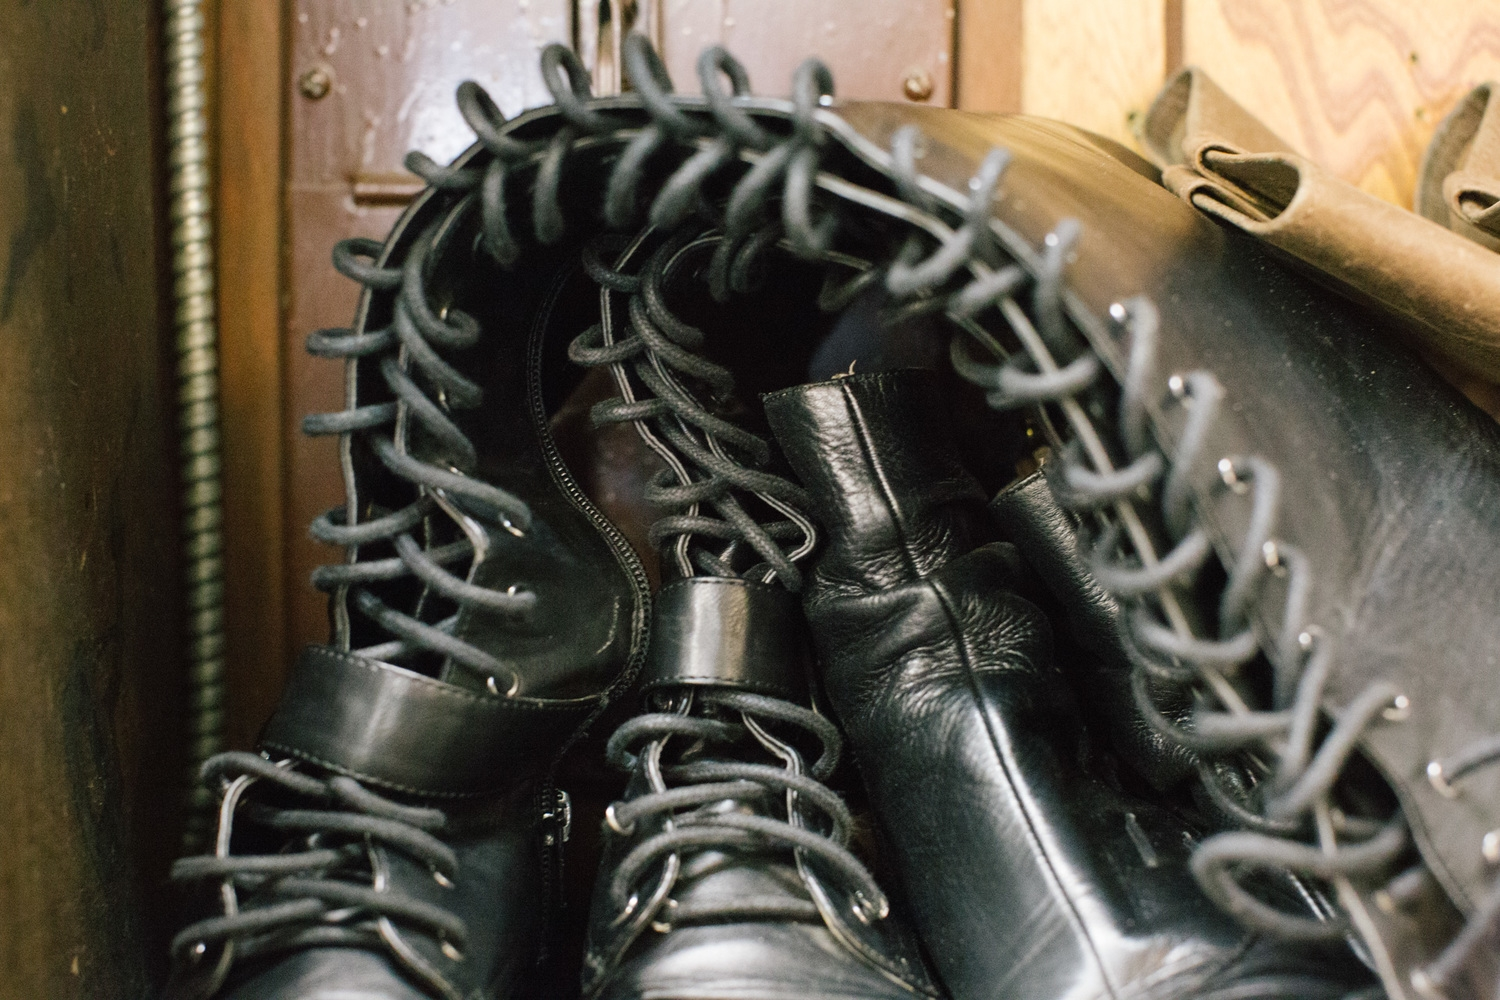 Leather boots wait to be repaired